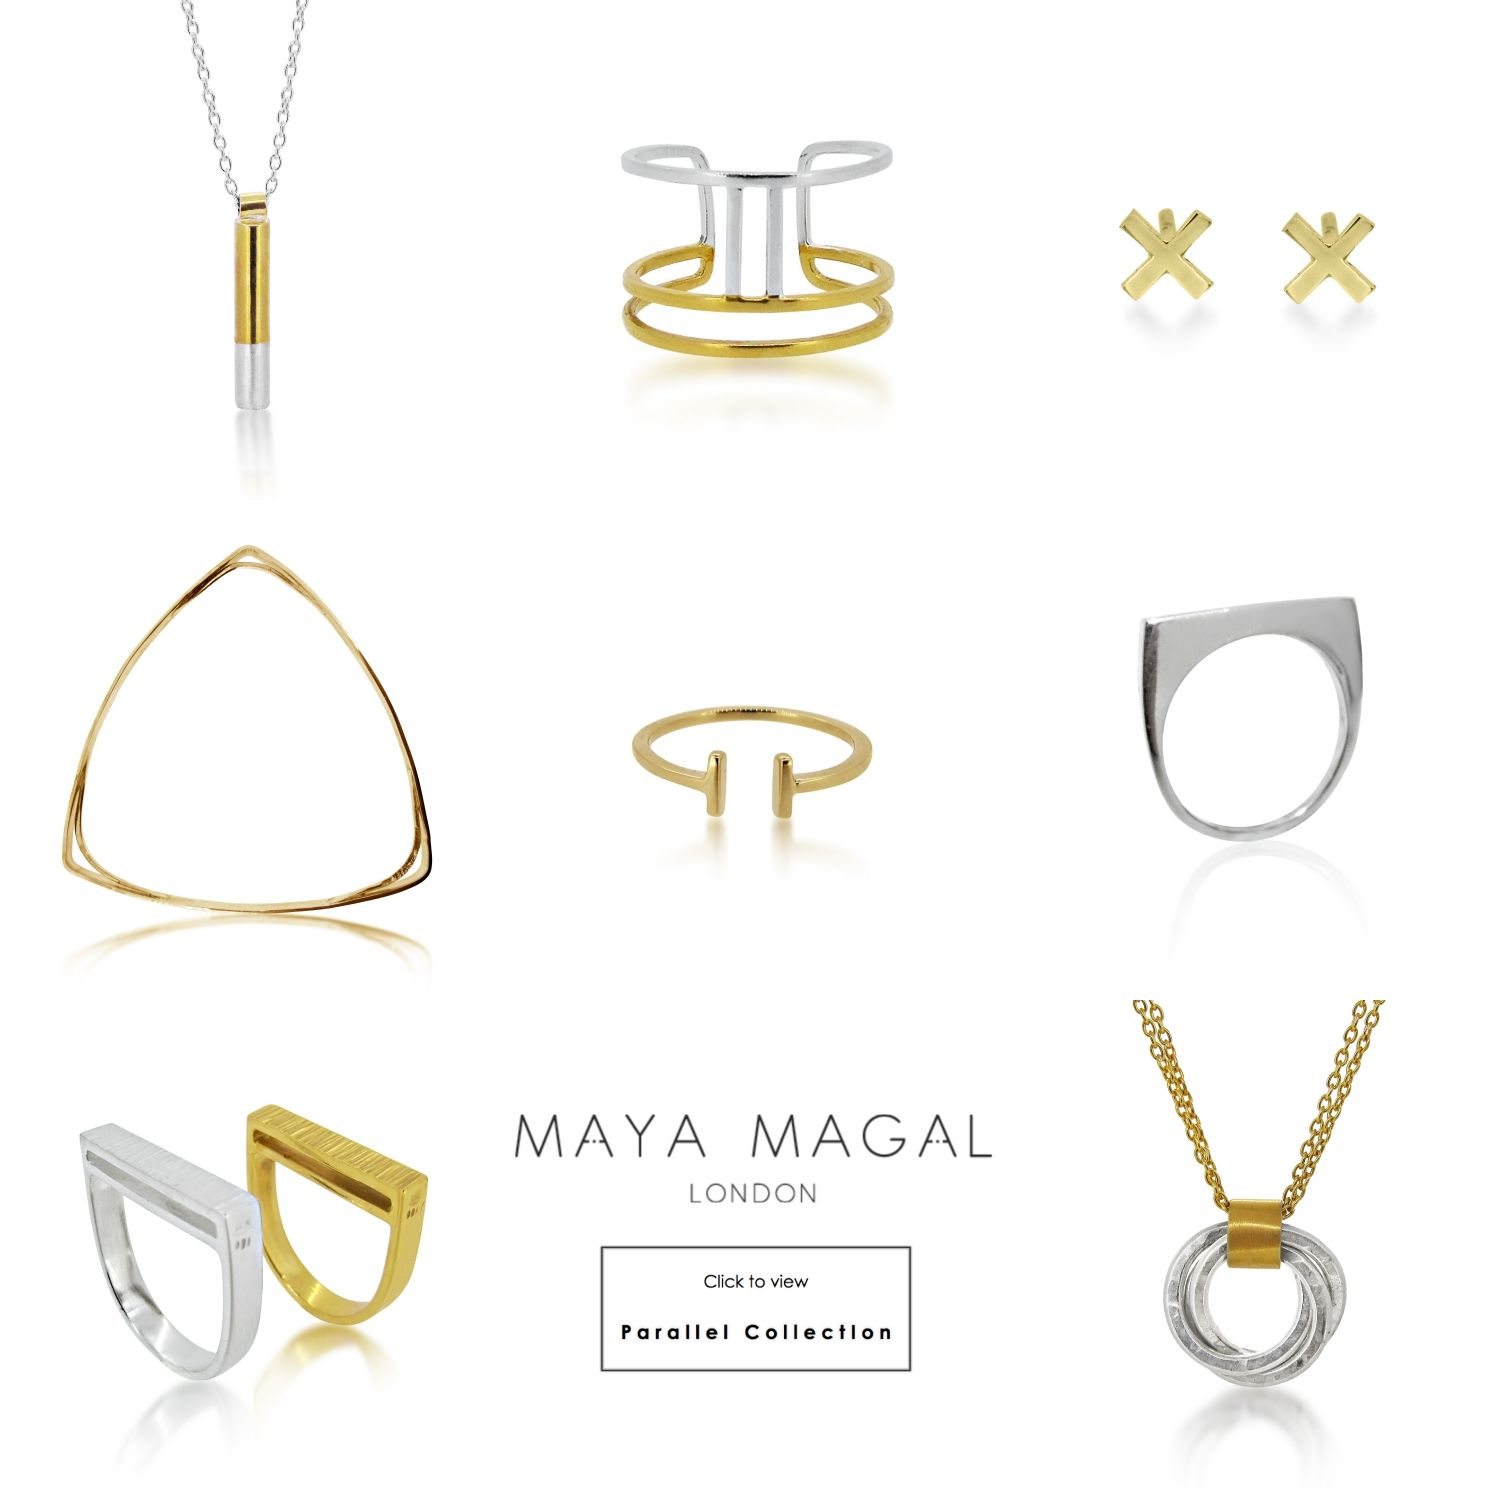 8e12a6a7c Maya Magal latest collection Parallel. AW15 collection. London based  jeweller. Stacking Rings. Silver and Gold. Kisses.